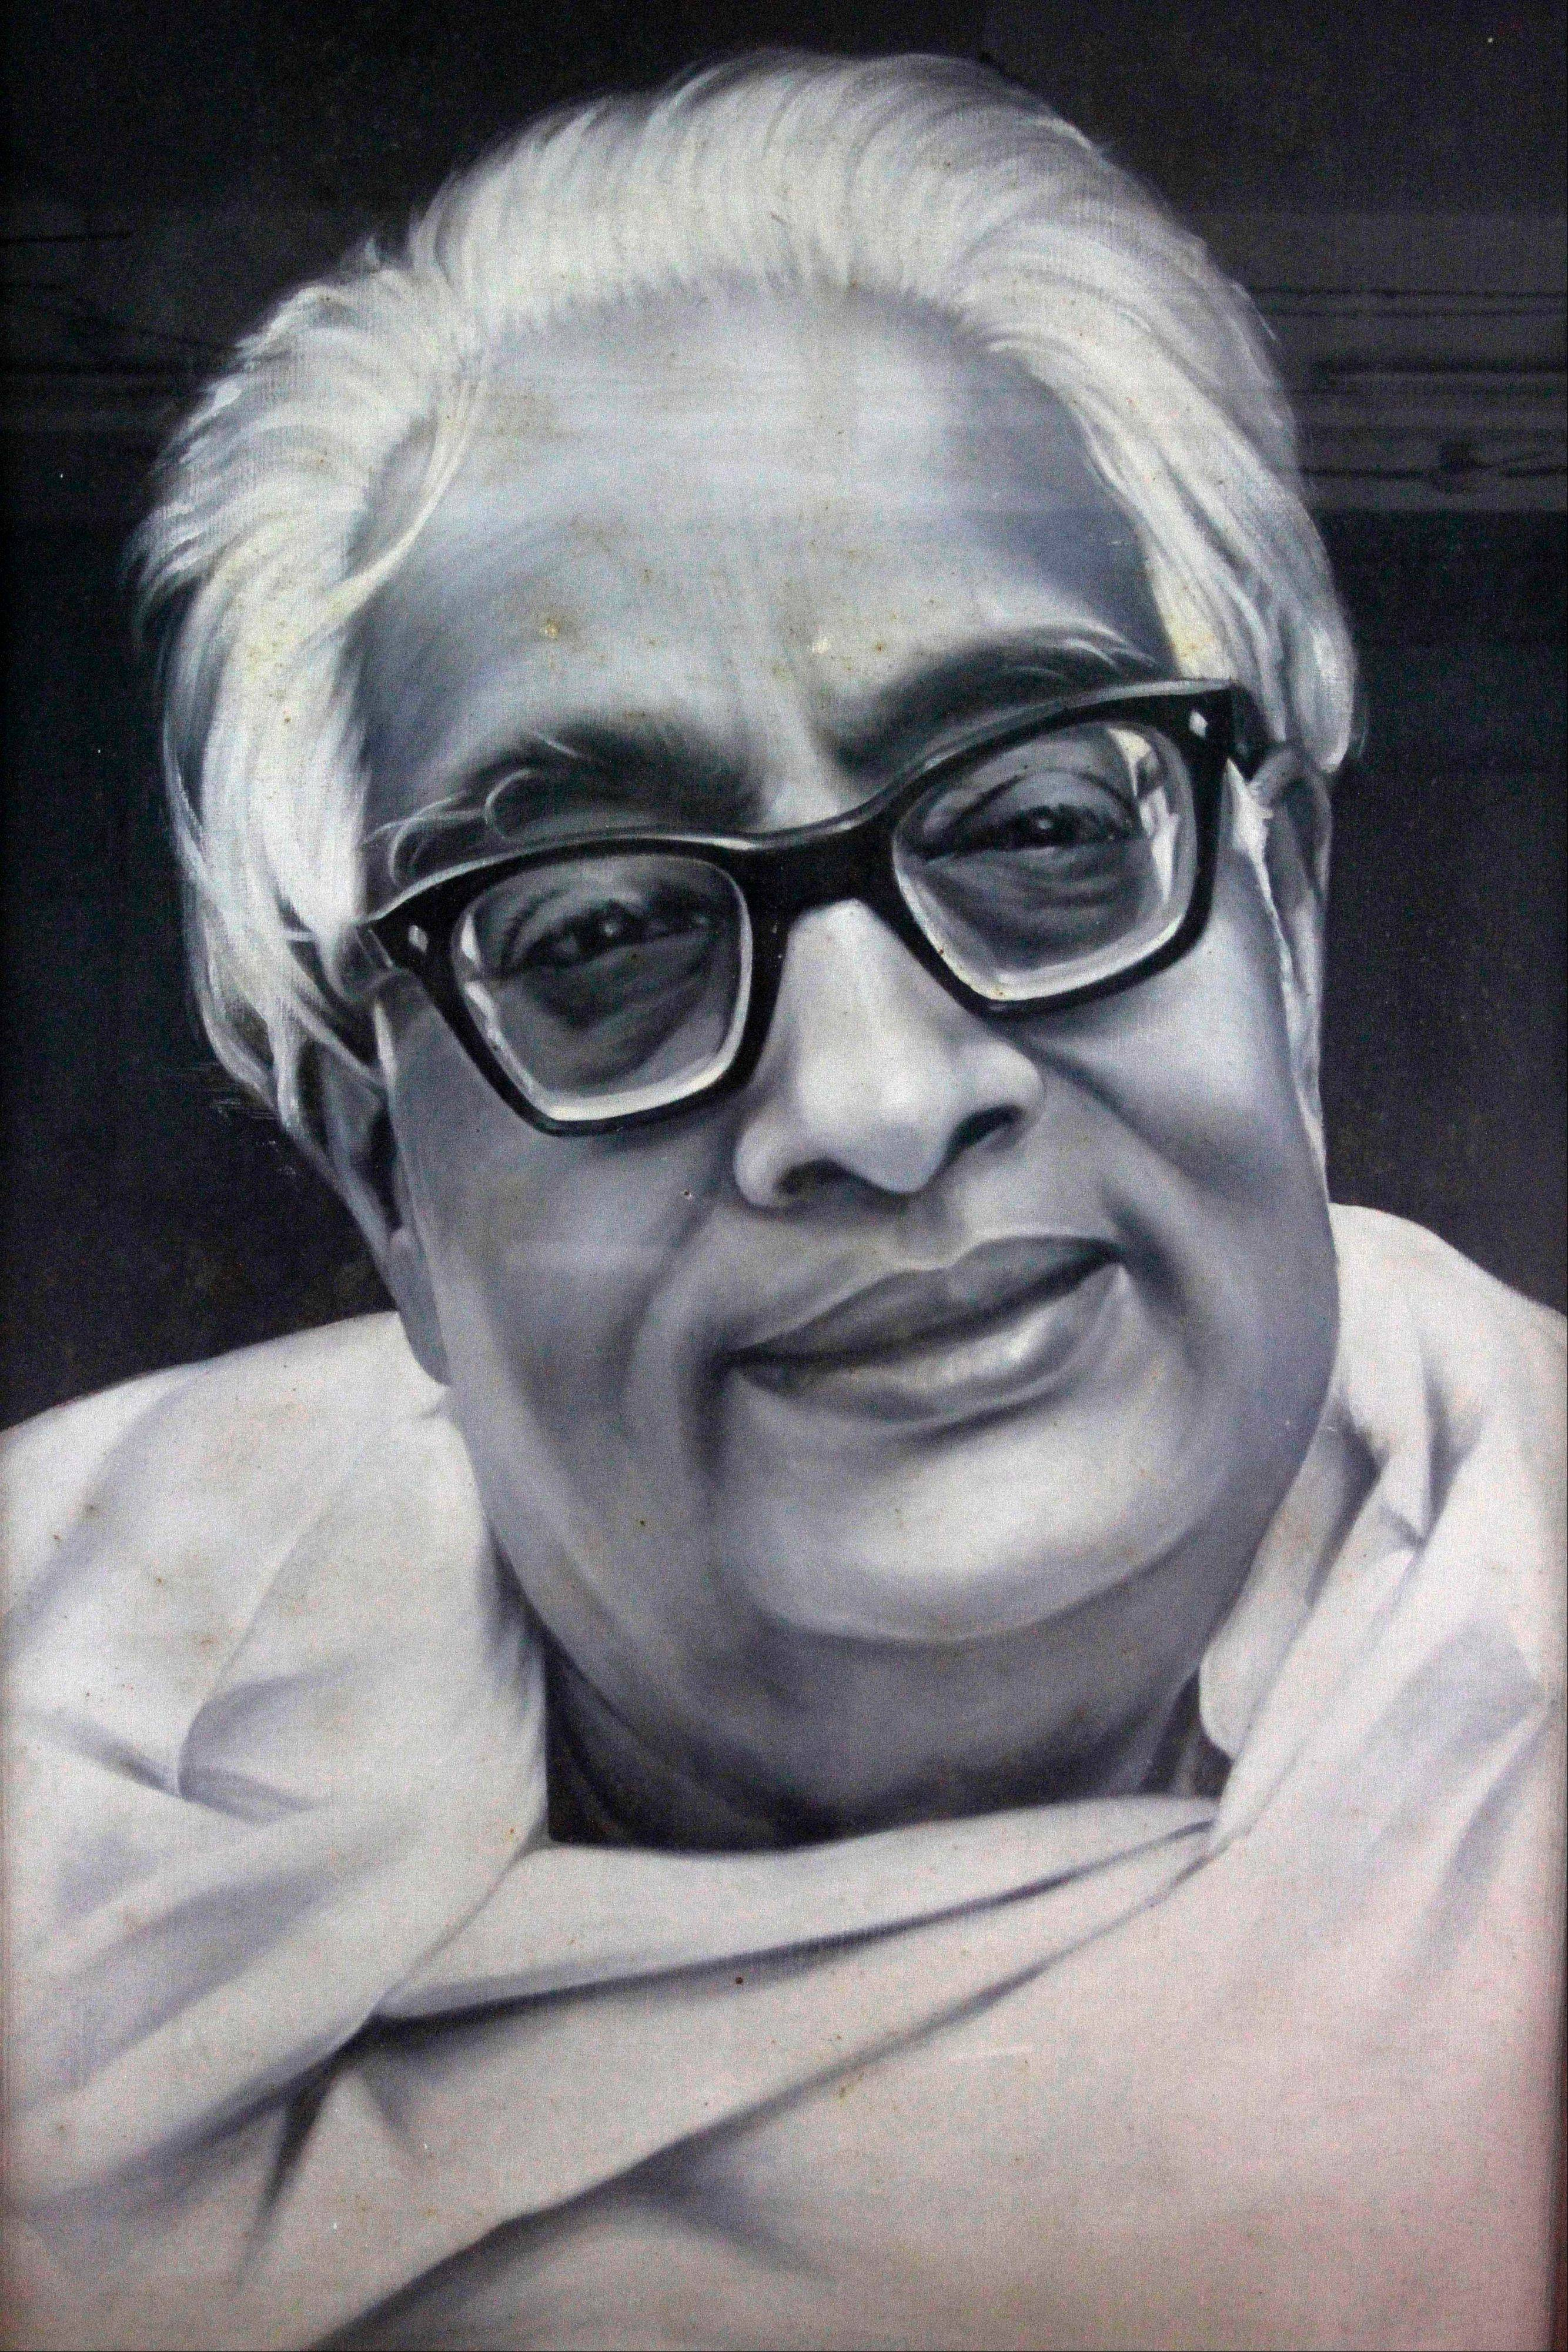 "This undated photo of a painting provided by the Bangiya Vigyan Parishad or the Bengal Science Society in Kolkata, India shows Indian scientist Satyendranath Bose. While much of the world was celebrating the international cooperation that led to last week's breakthrough in identifying the existence of the Higgs boson particle, many in India were smarting over what they saw as a slight against one of their greatest scientists. Media covering the story gave lots of credit to British physicist Peter Higgs for theorizing the elusive subatomic ""God particle,"" but little was said about Satyendranath Bose, the Indian after whom the boson is named."